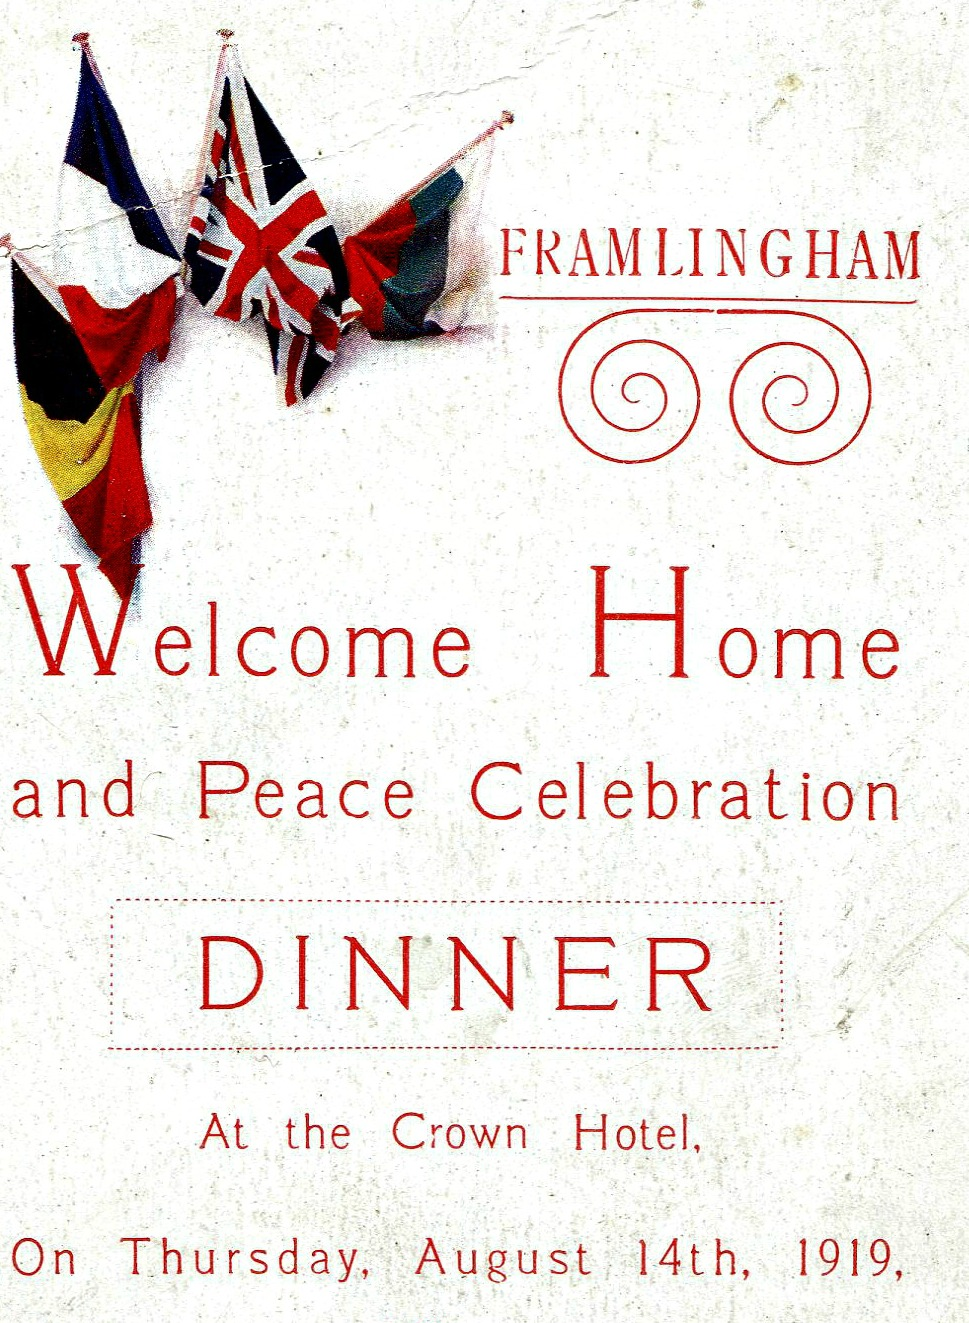 Welcome Home and Peace celebration, August 14th, 1919